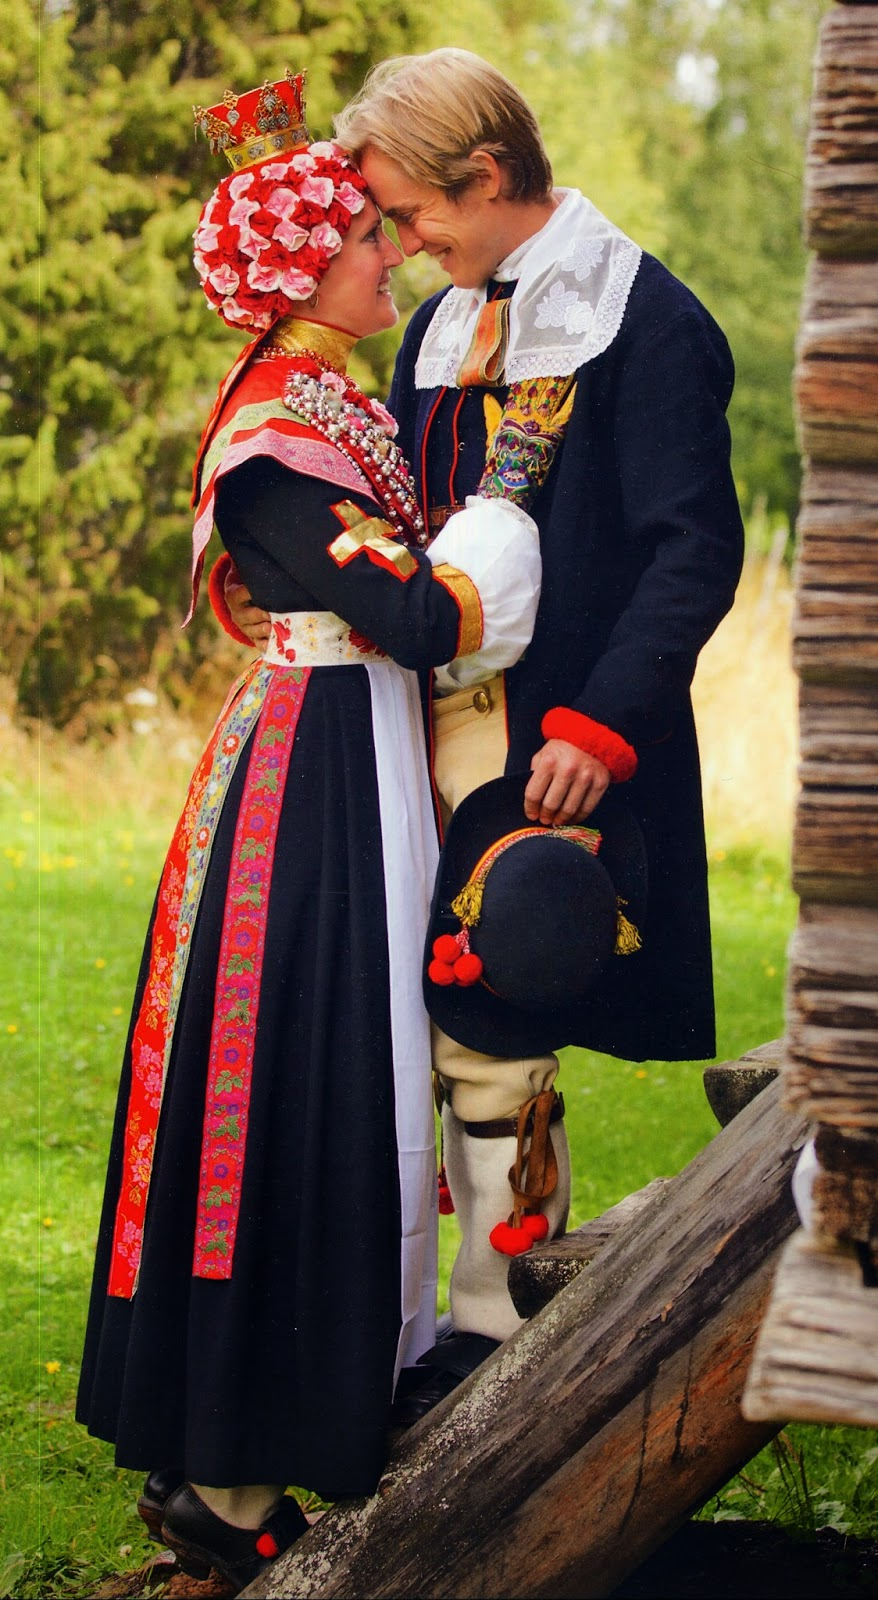 FolkCostumeampEmbroidery Short Overview Of Traditional Bridal Dress In Western Europe